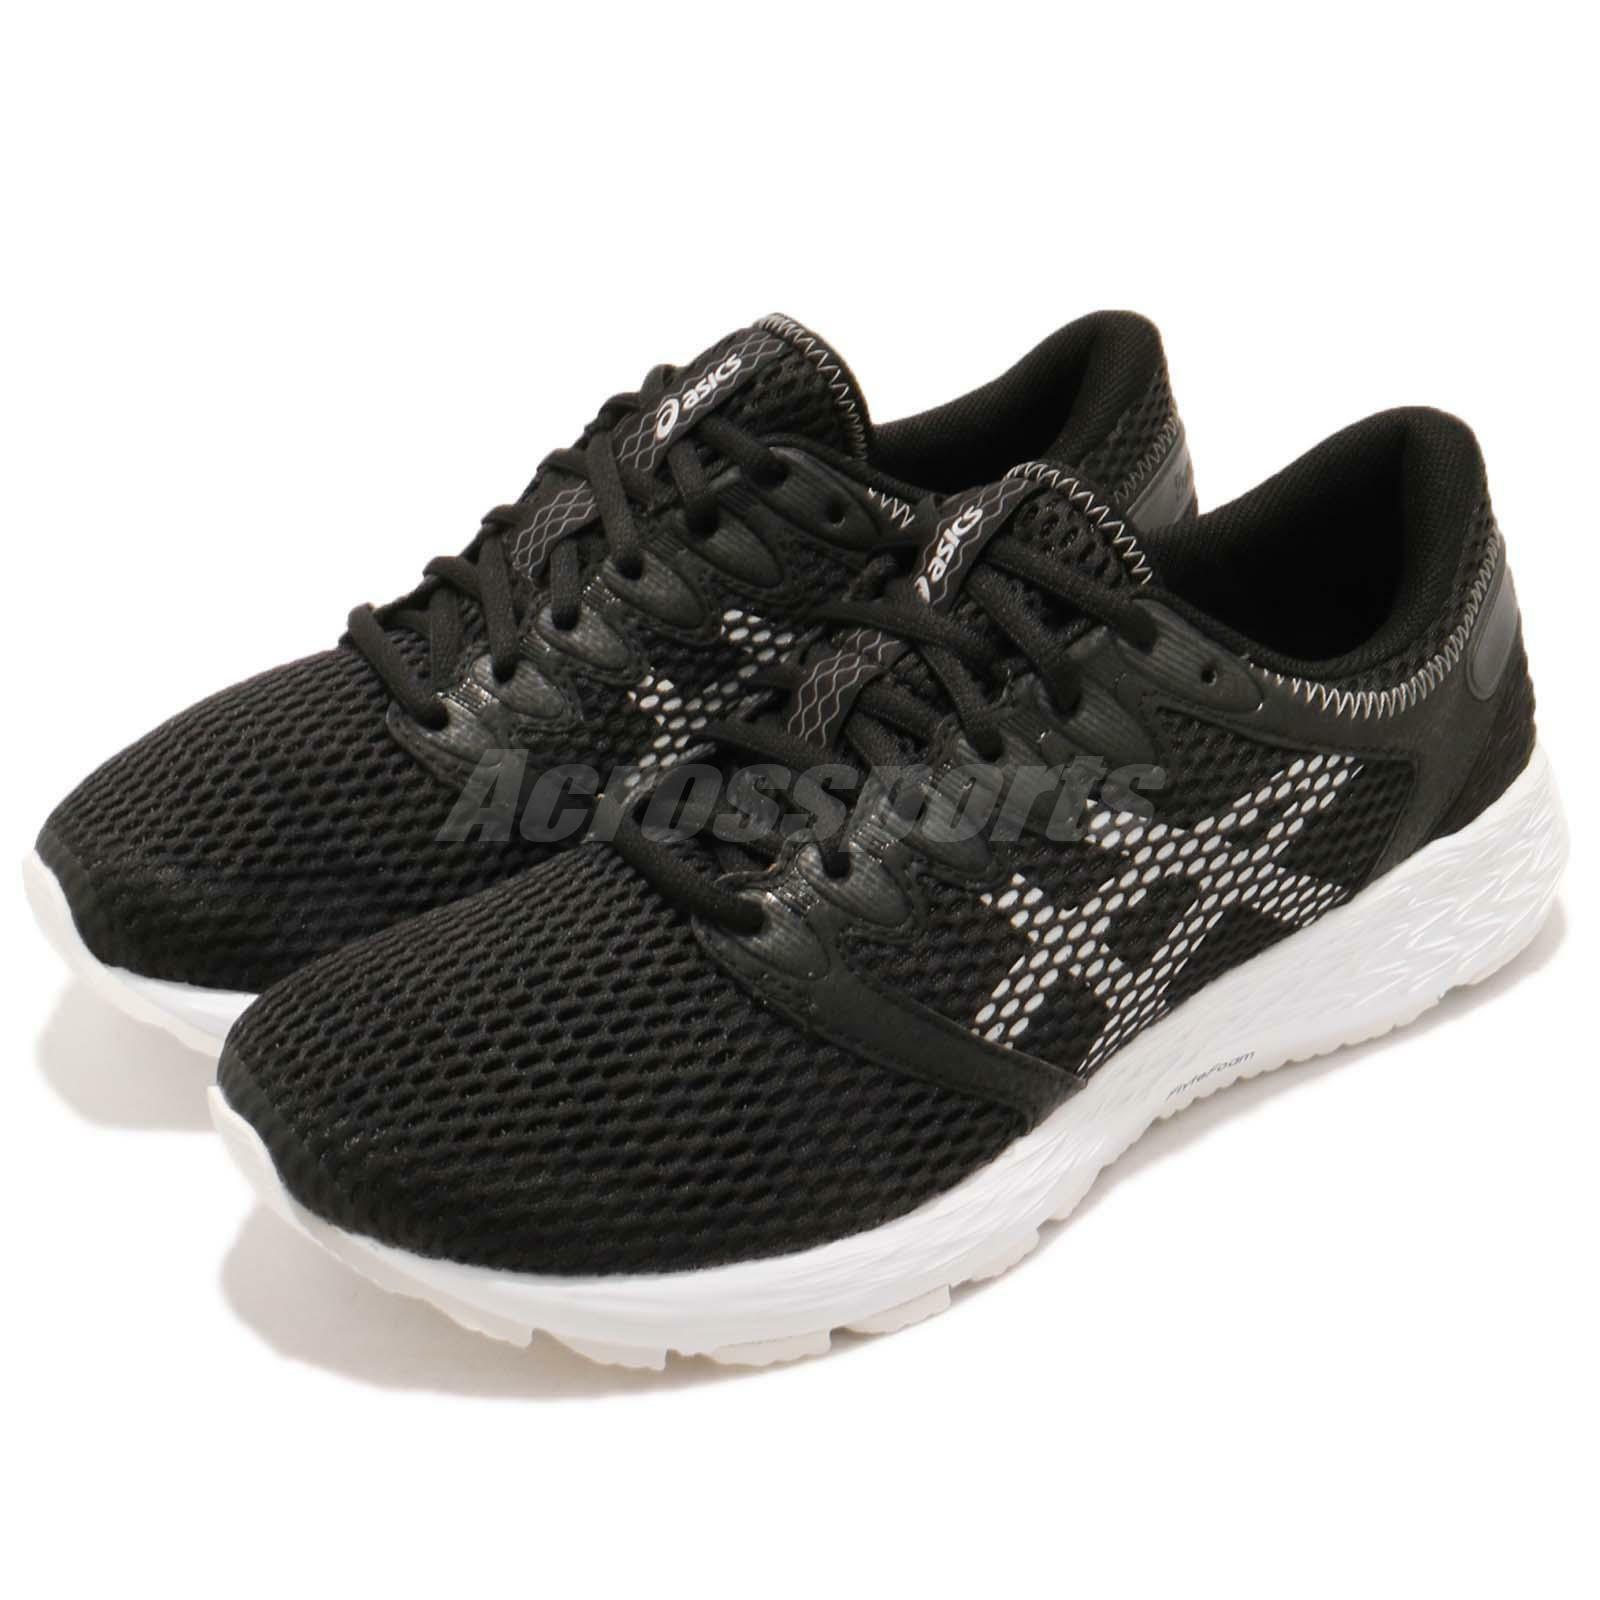 pretty nice 475b7 40018 Asics RoadHawk FF2 Black White Running Casual Shoes Shoes Shoes Sneakers  1011A136-001 dbfb29